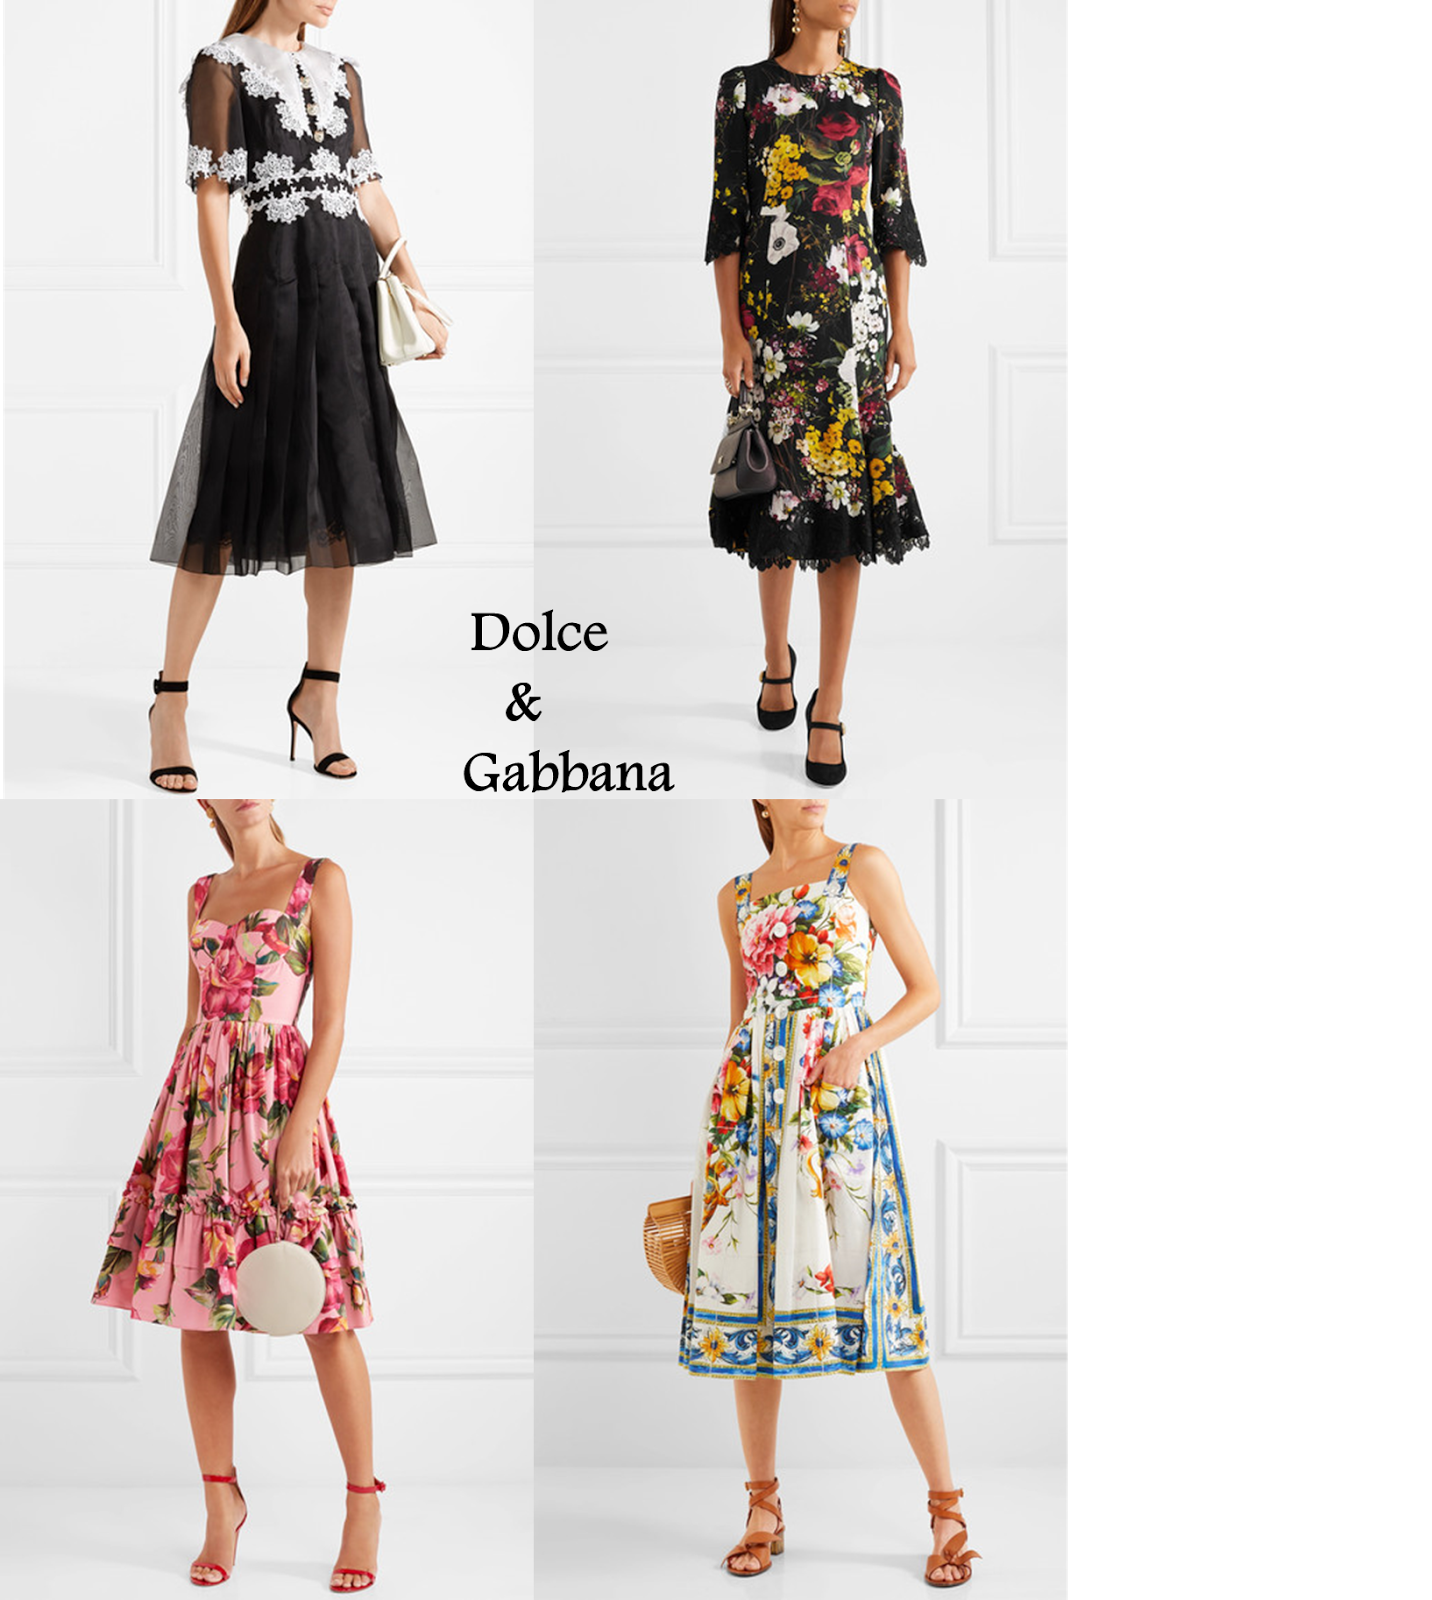 Dolce and Gabbana Dresses